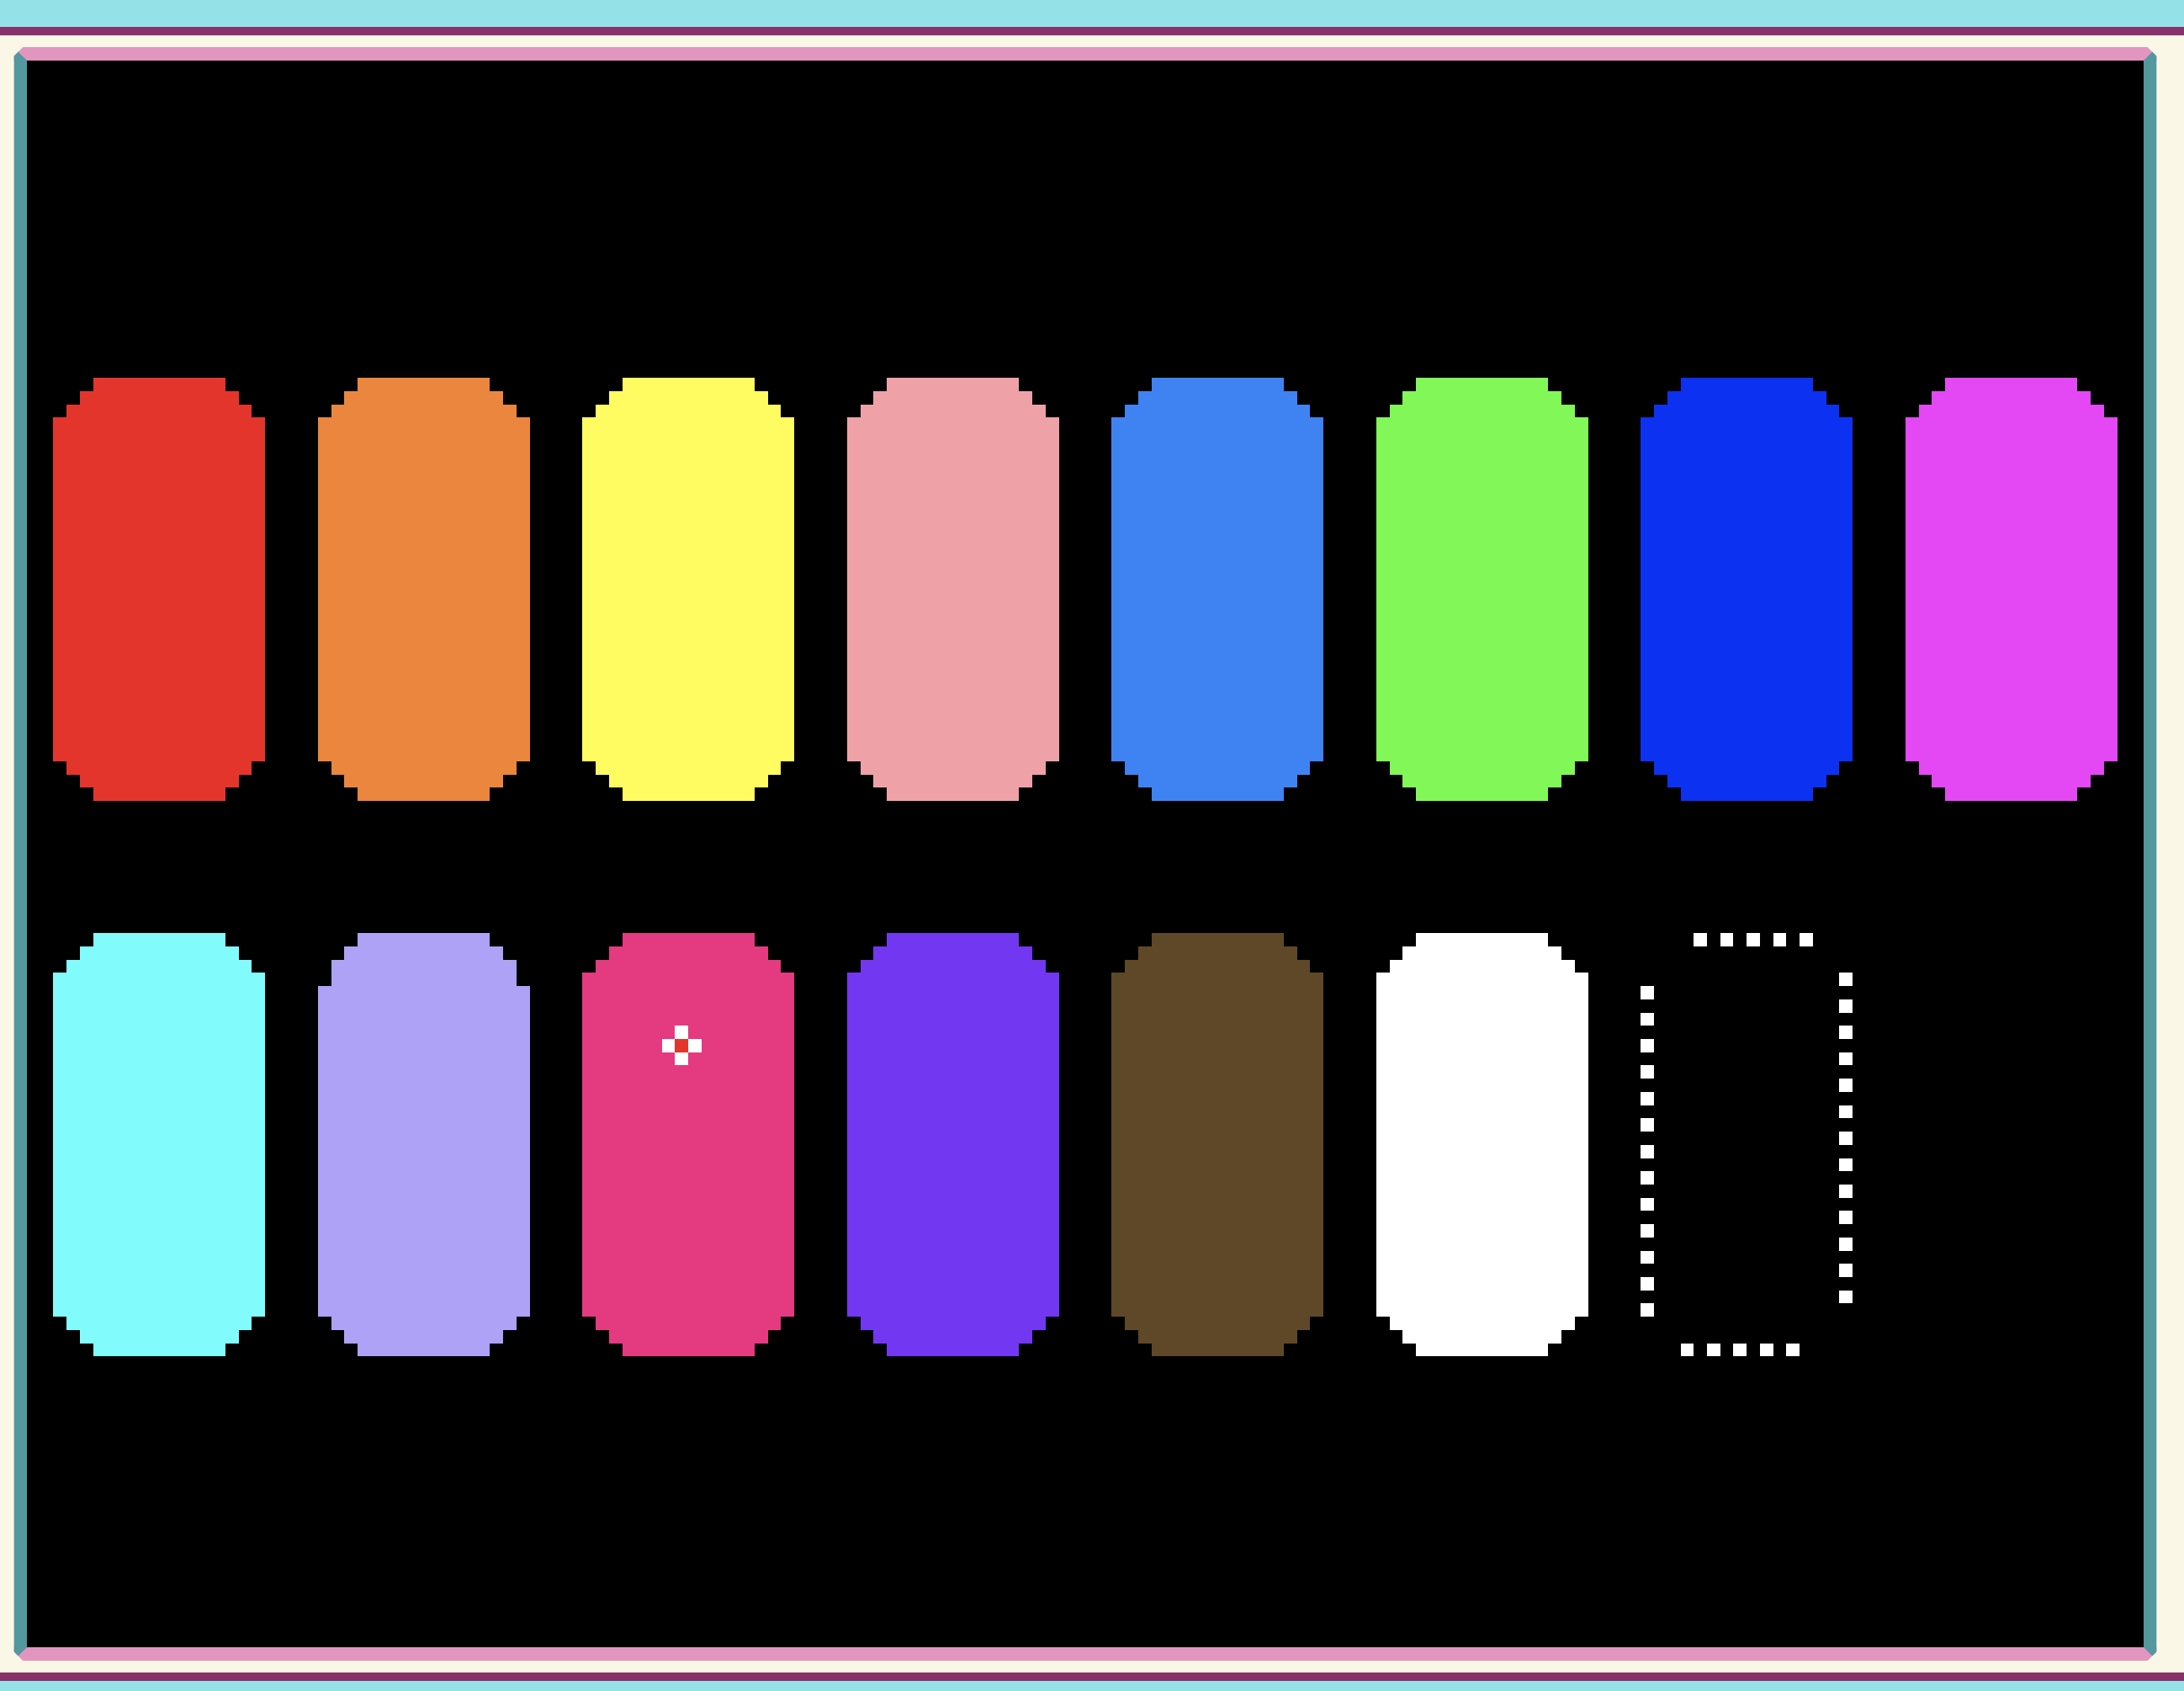 led_strips_page_1.png